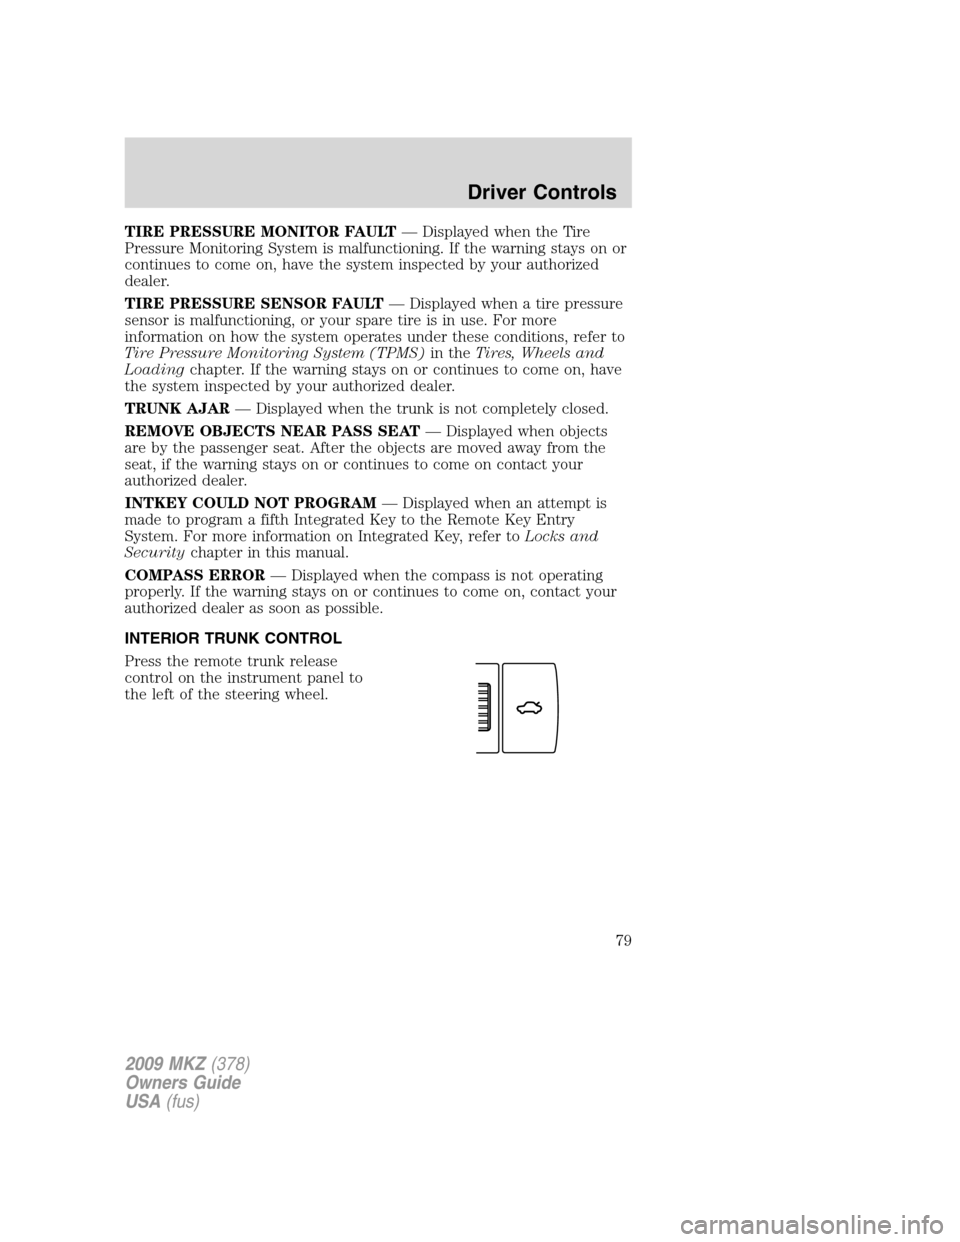 2008 lincoln mkz owners manual